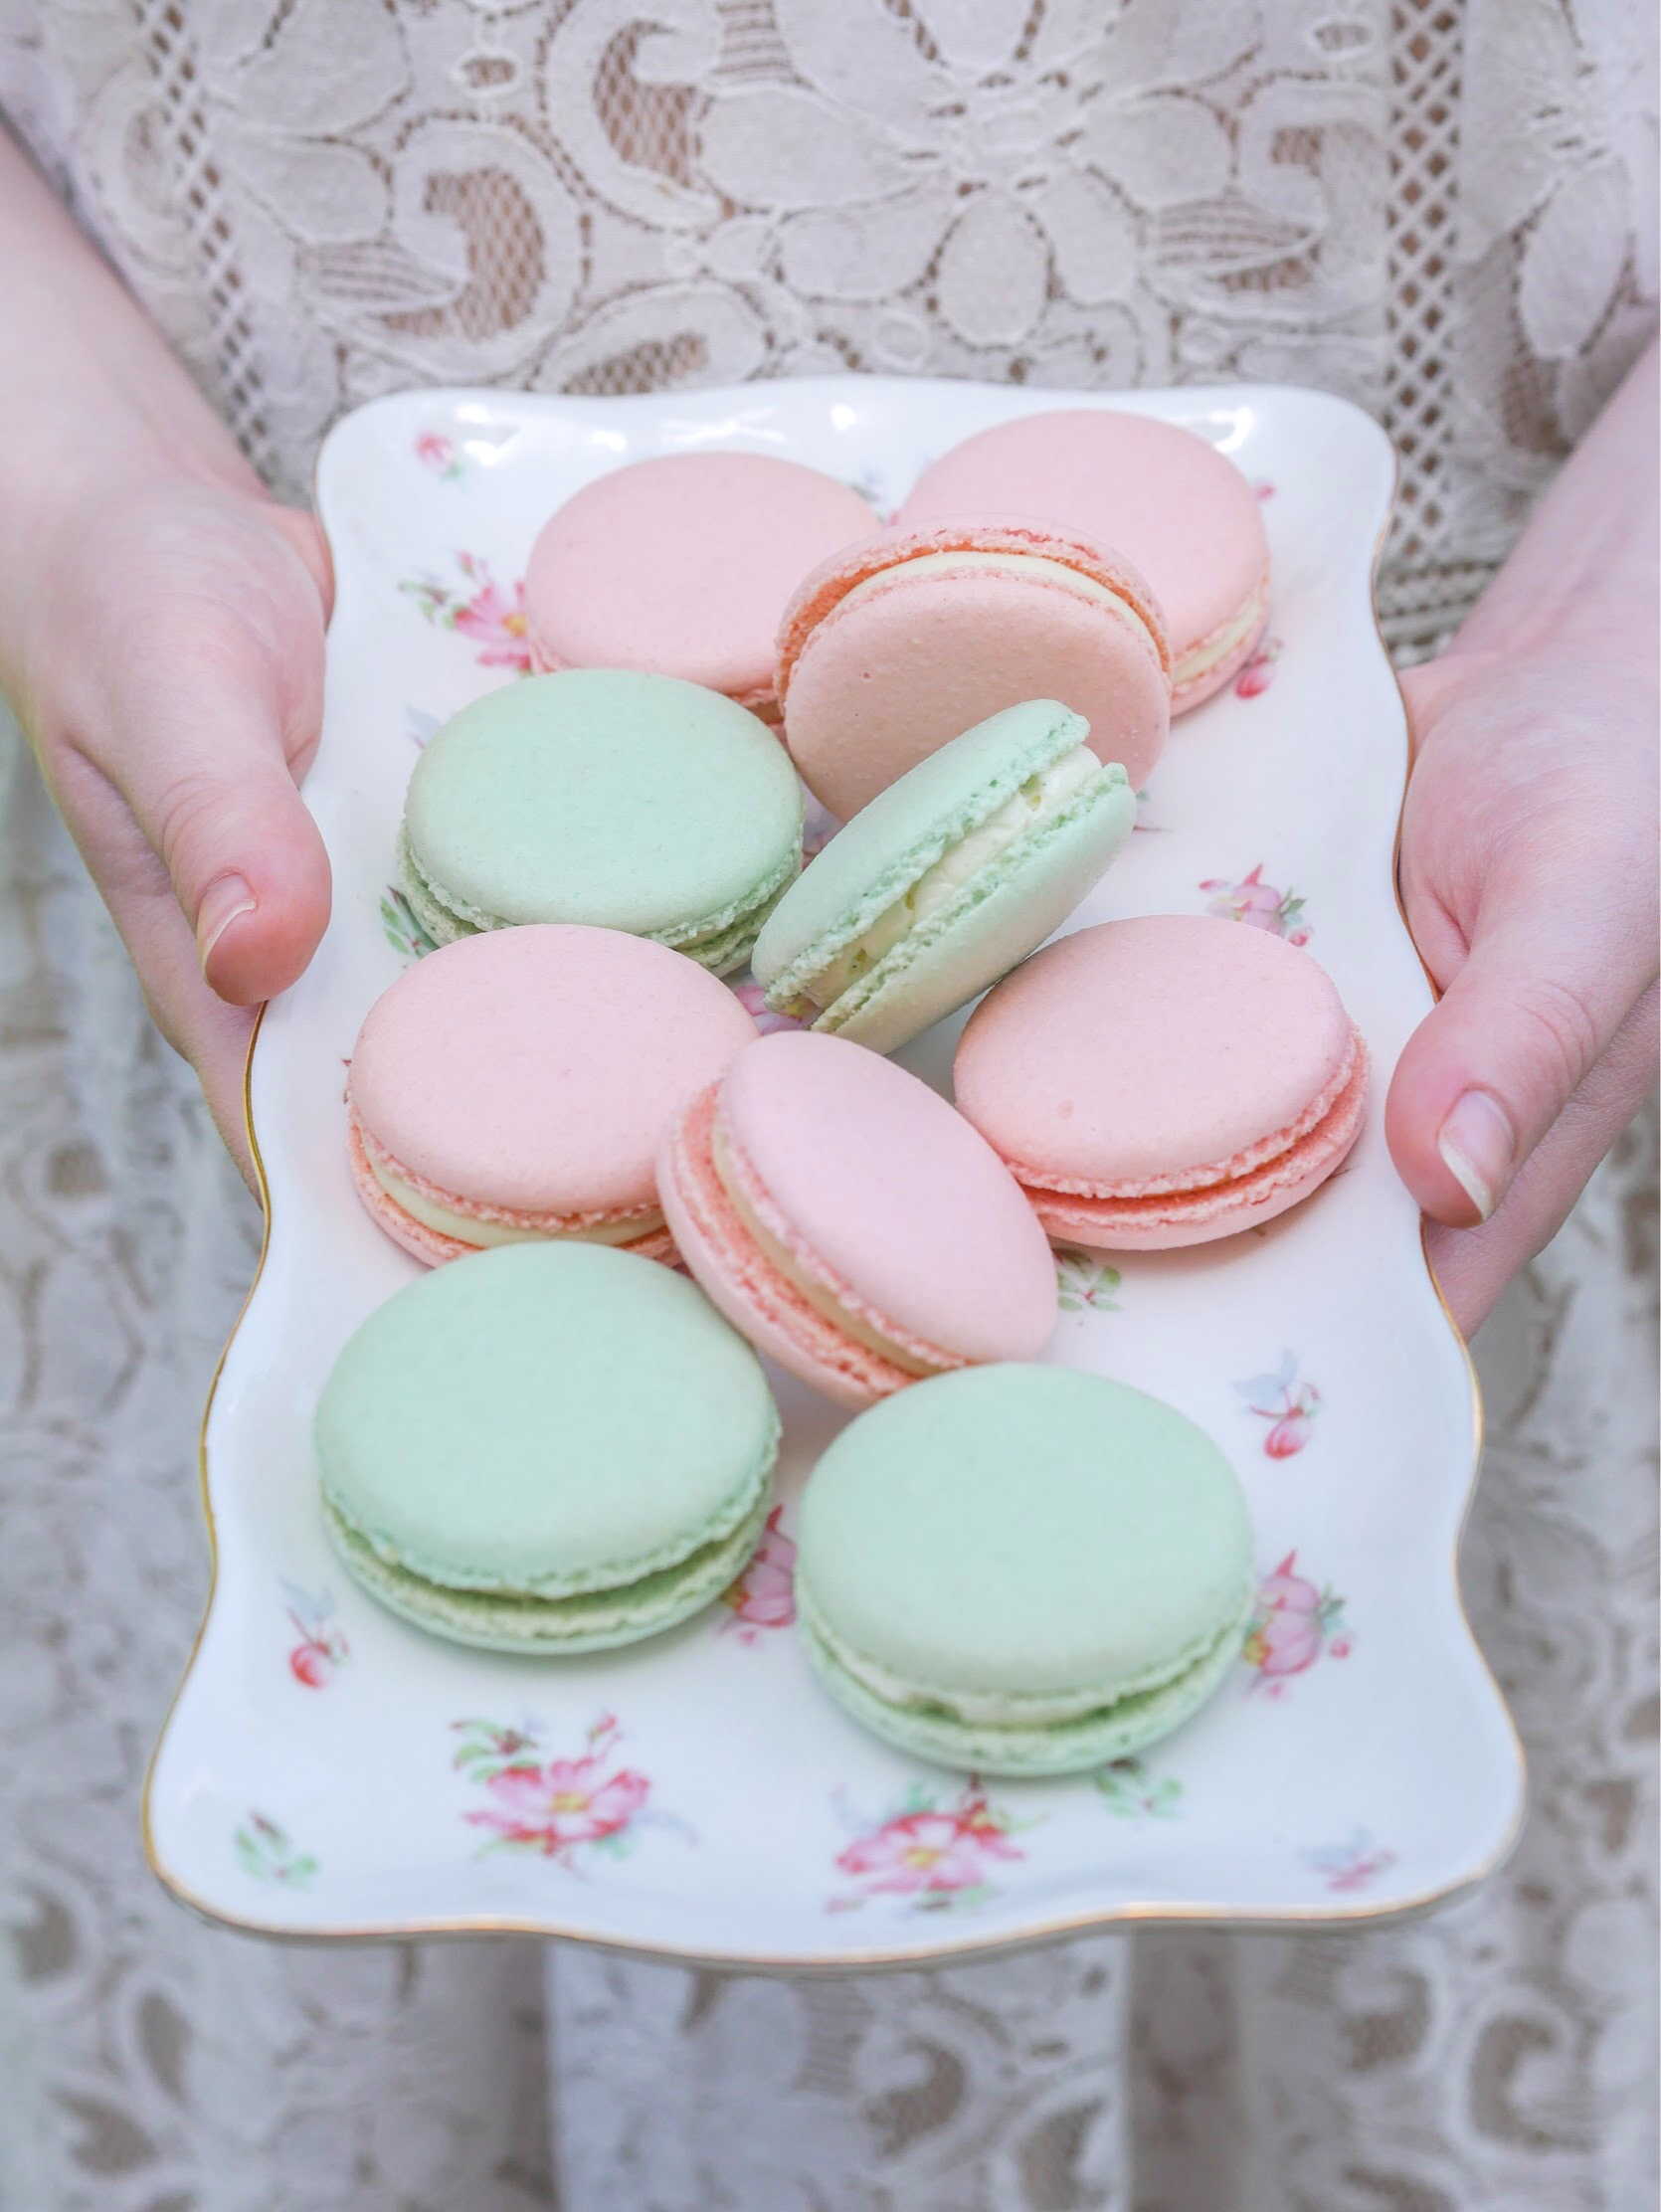 Macarons are always a good idea for party desserts - they always feel so fancy. Come see all the shabby chic and vintage vibe party ideas from Mint Event Design www.minteventdesign.com #dessertparty #partytips #partyplanning #partyideas #diyparty #macarons